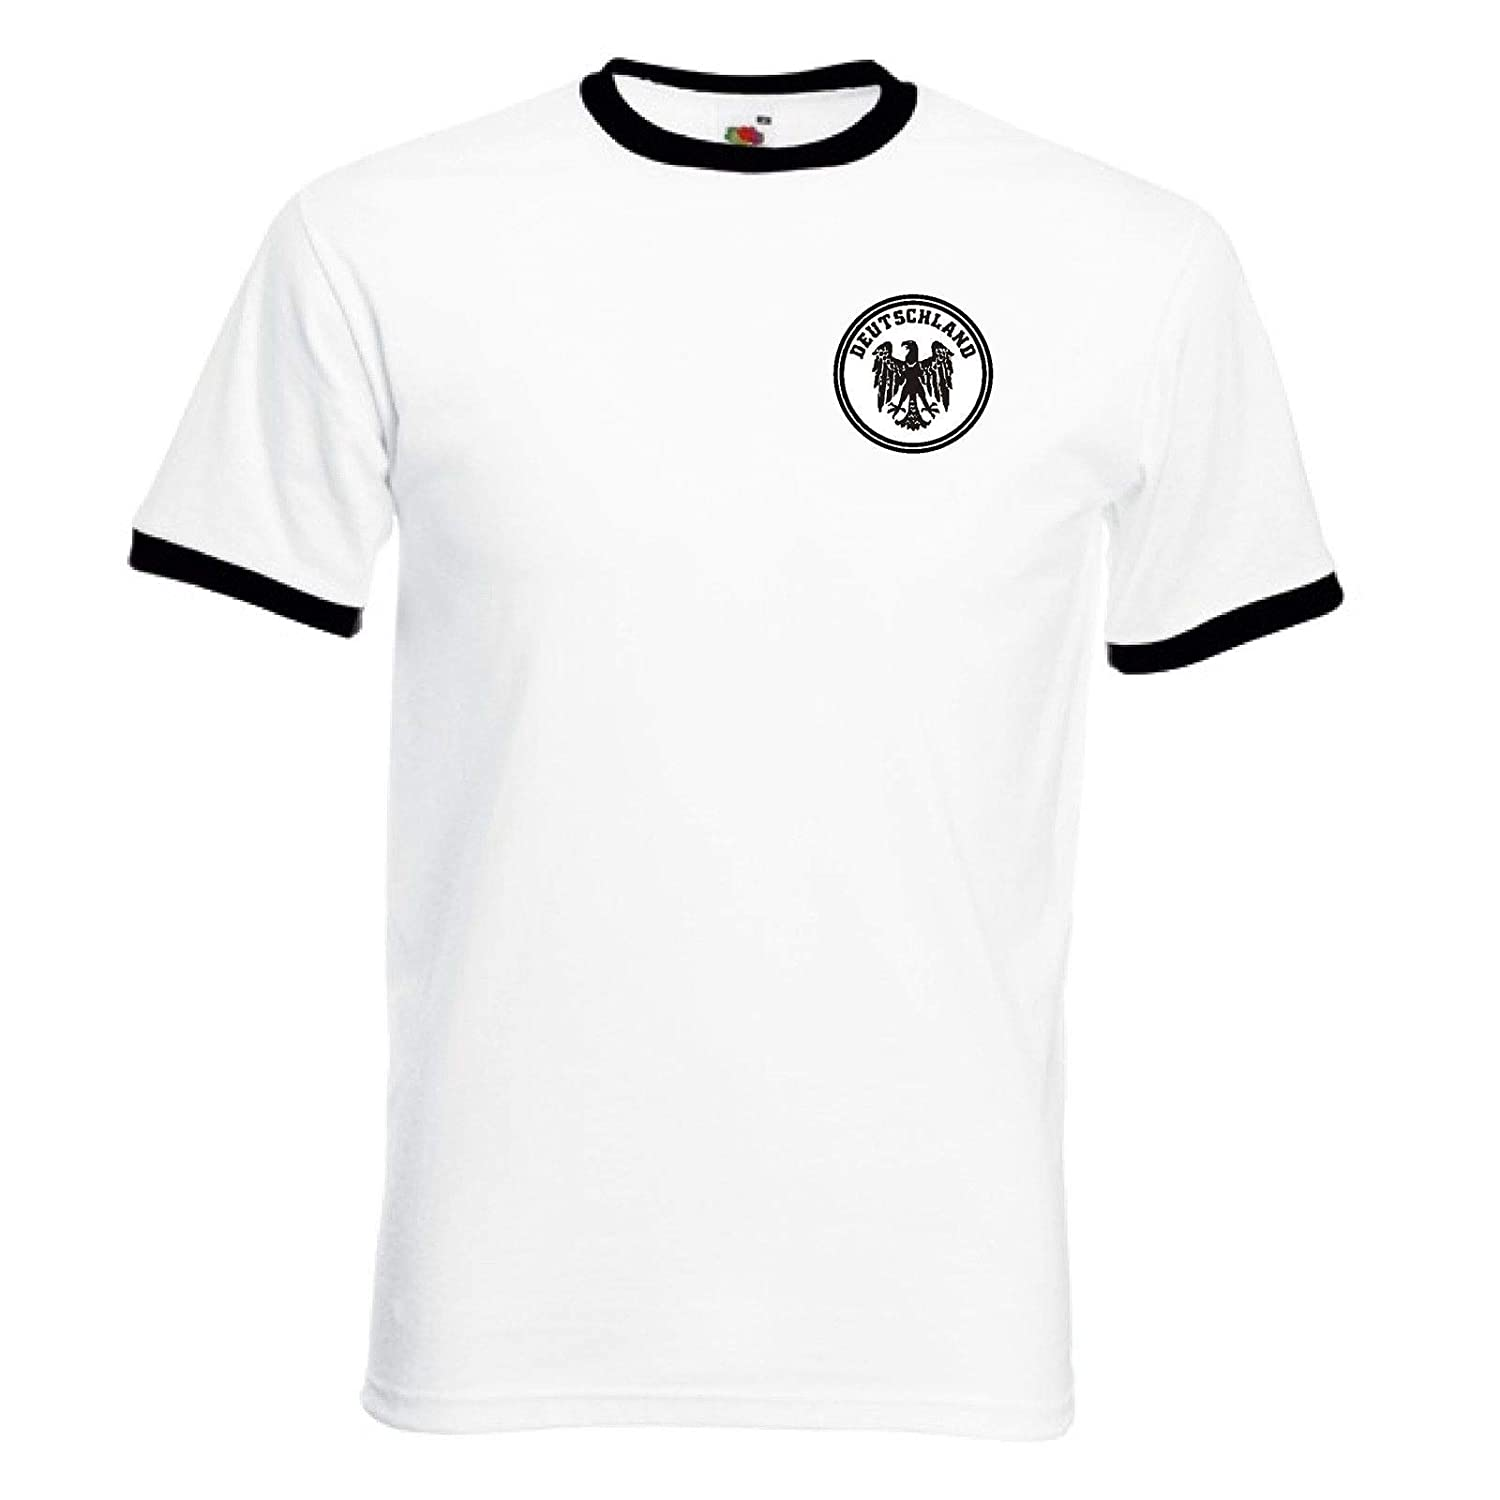 Invicta Screen Printers Germany Deutschland Deutsch Camiseta Retro ...